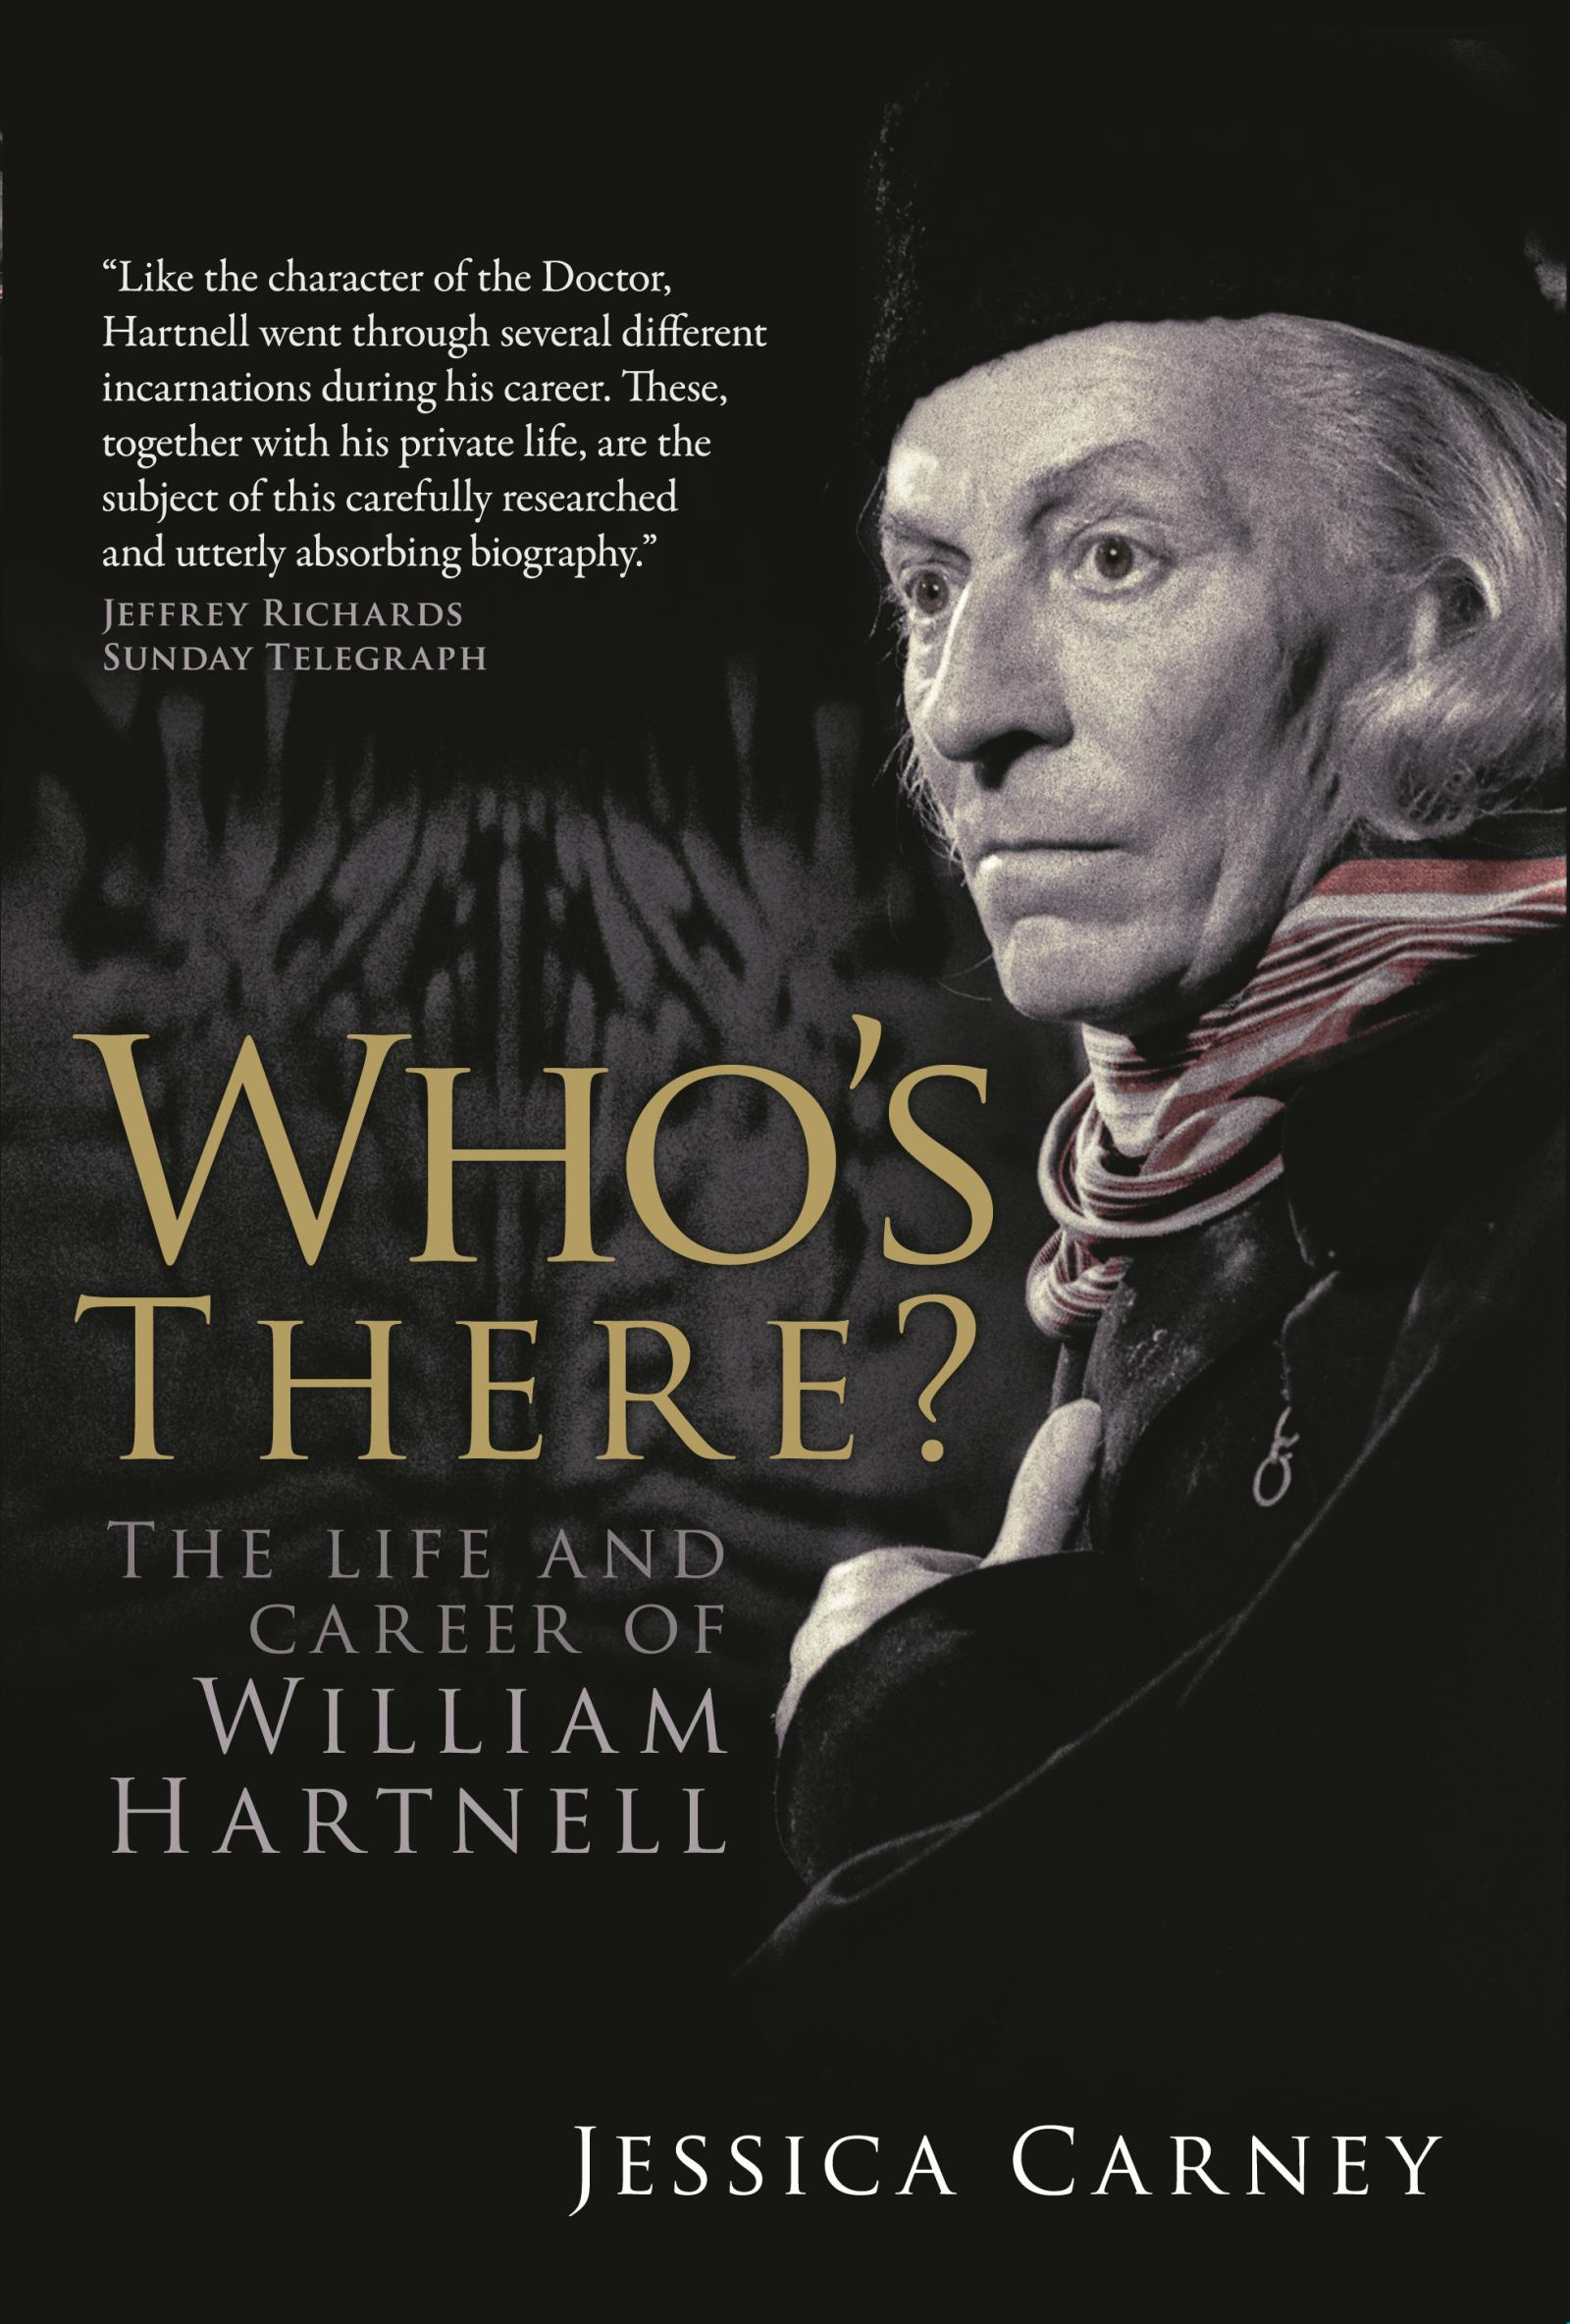 Who's There? The Life and Career of William Hartnell (book) (Credit: Fantom Publishing)